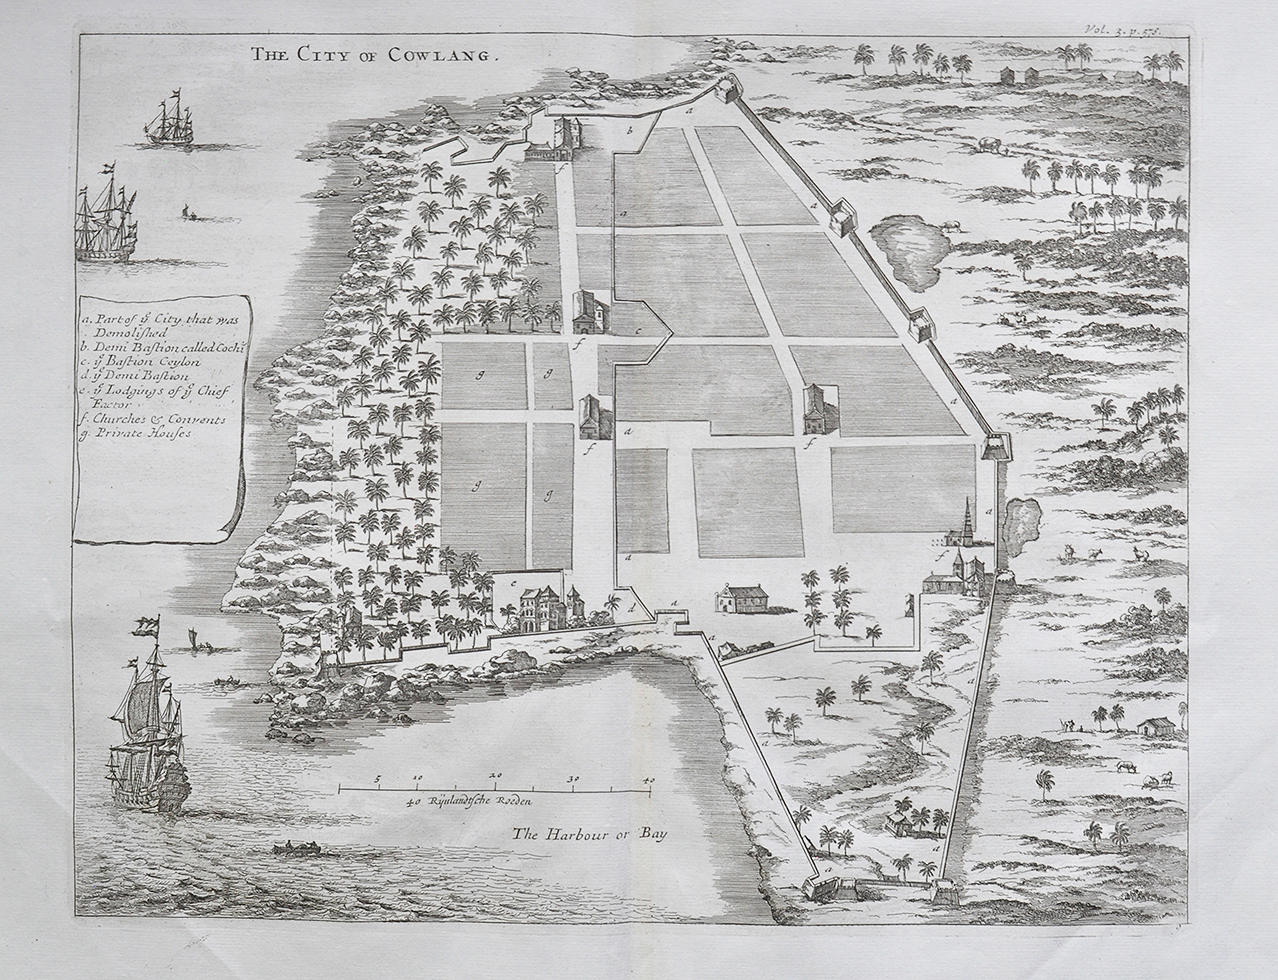 City of Cowlang or Kollam In South India - Antique Map 1750